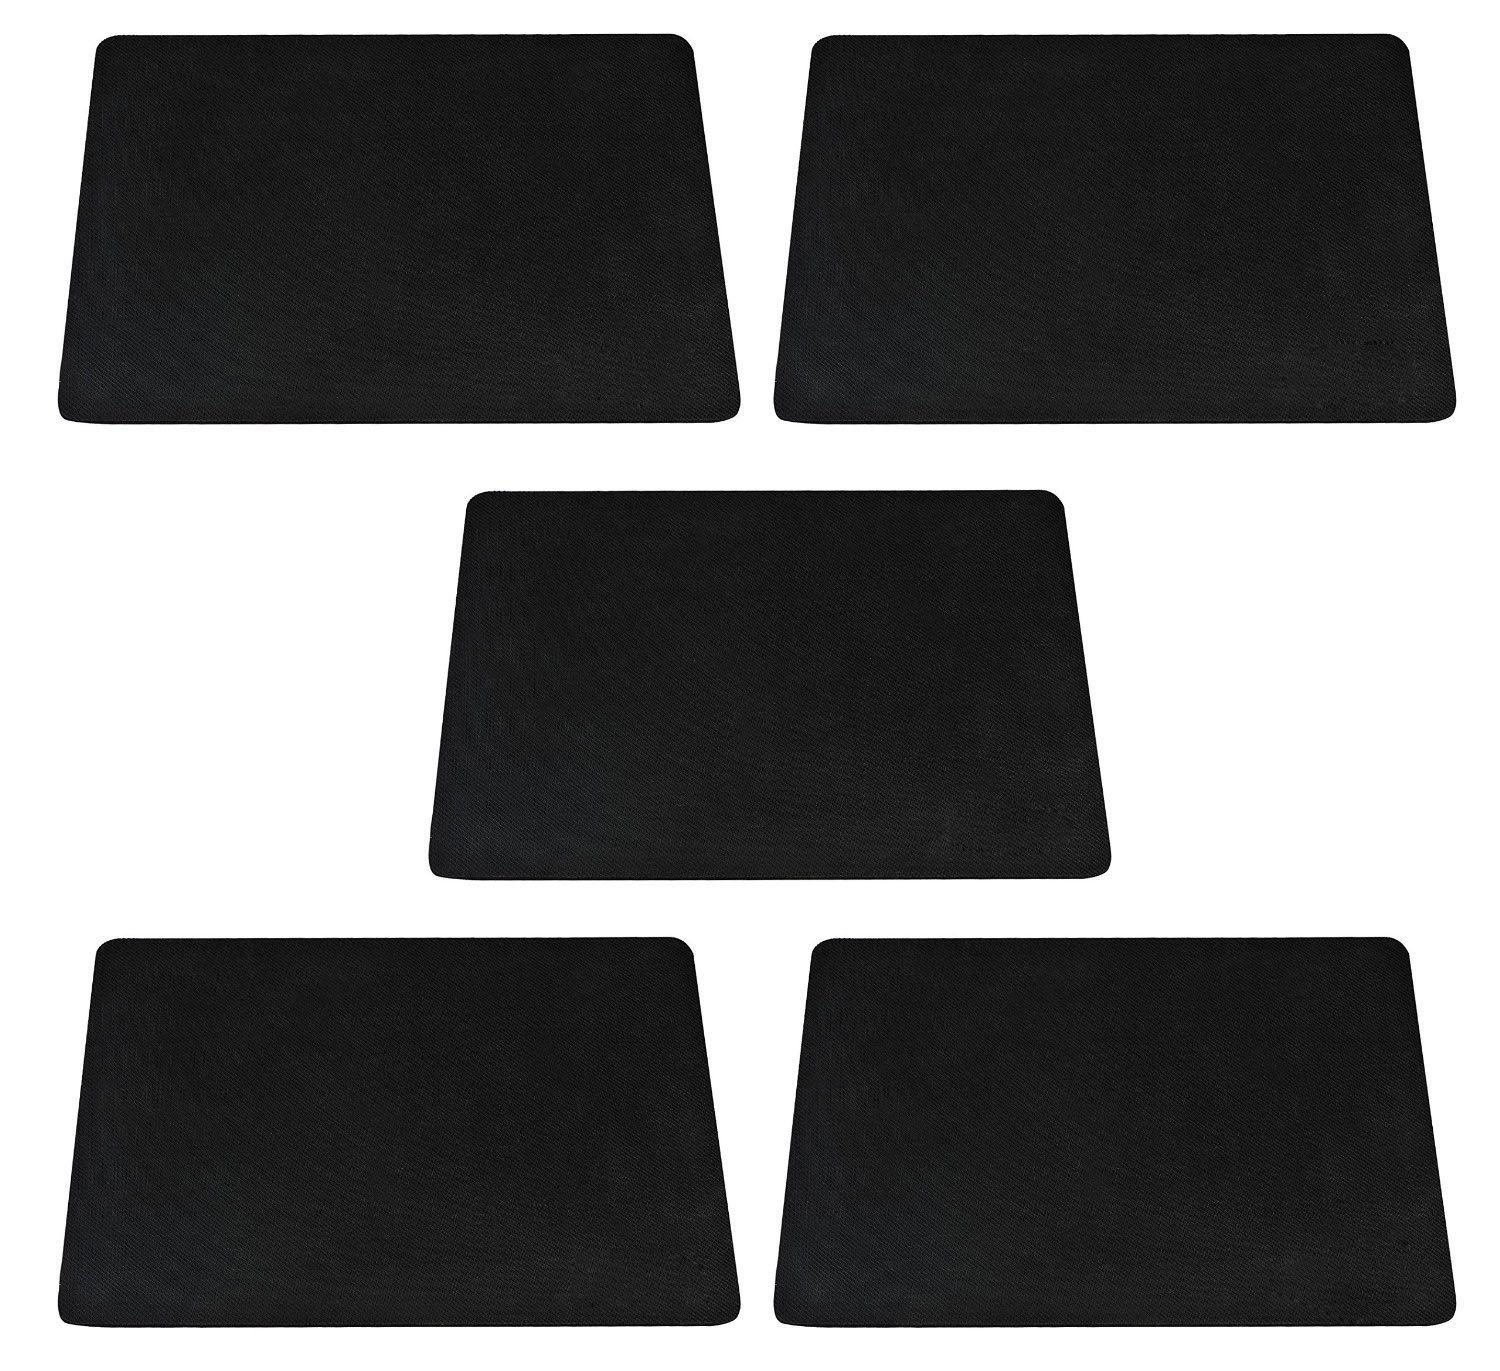 3mm Mouse Pad -5 pack